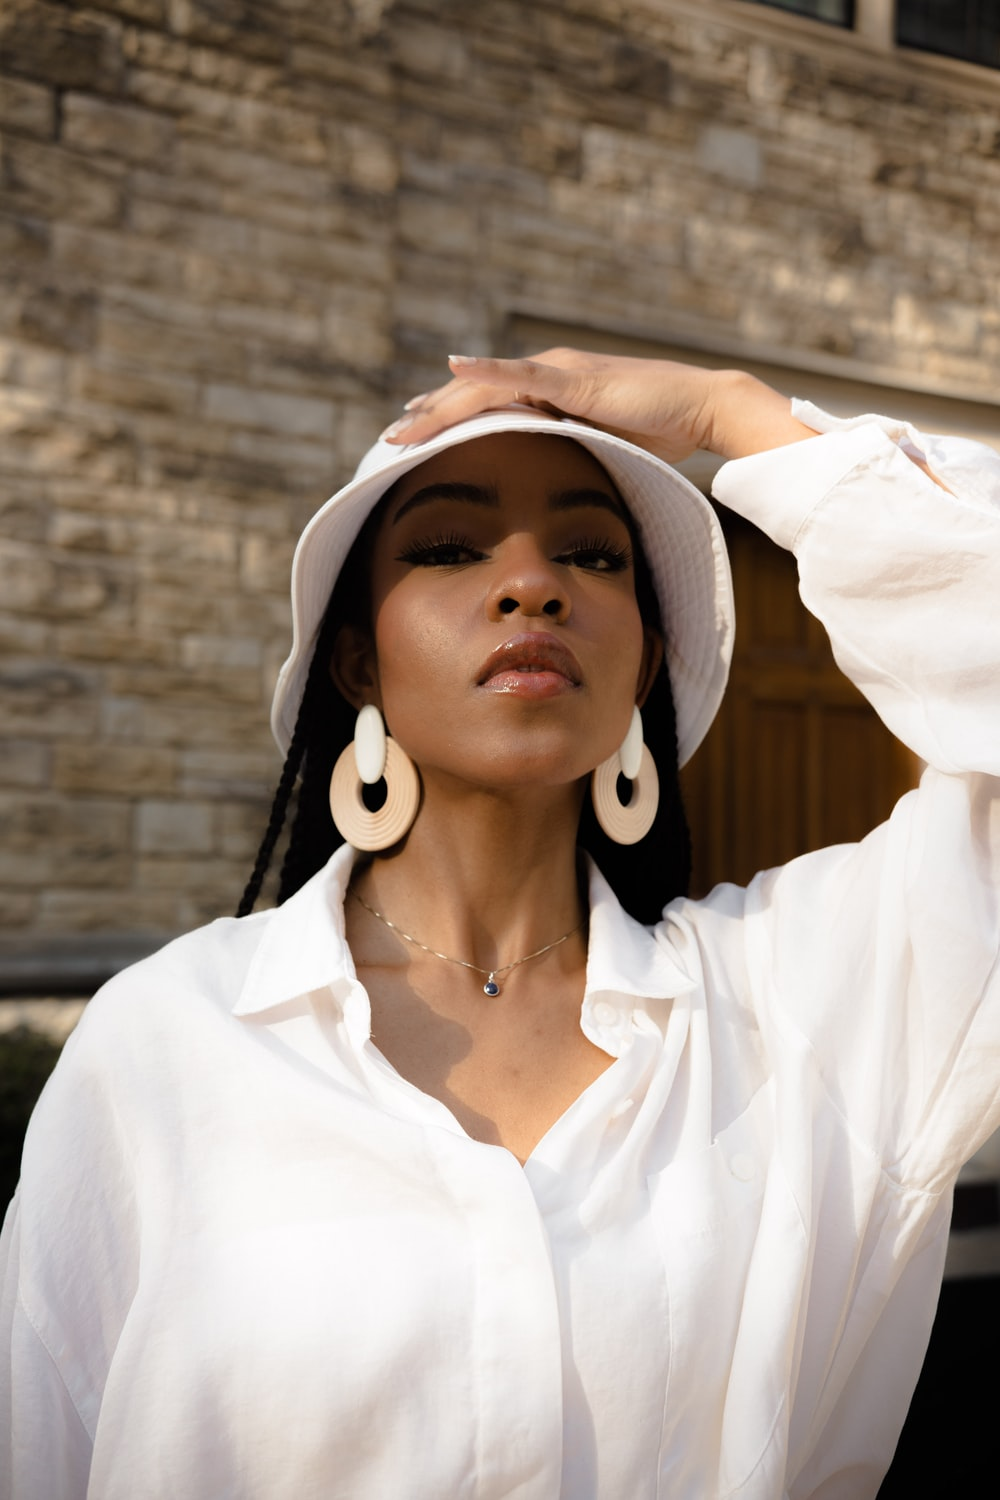 woman in white button up shirt wearing white and brown hat